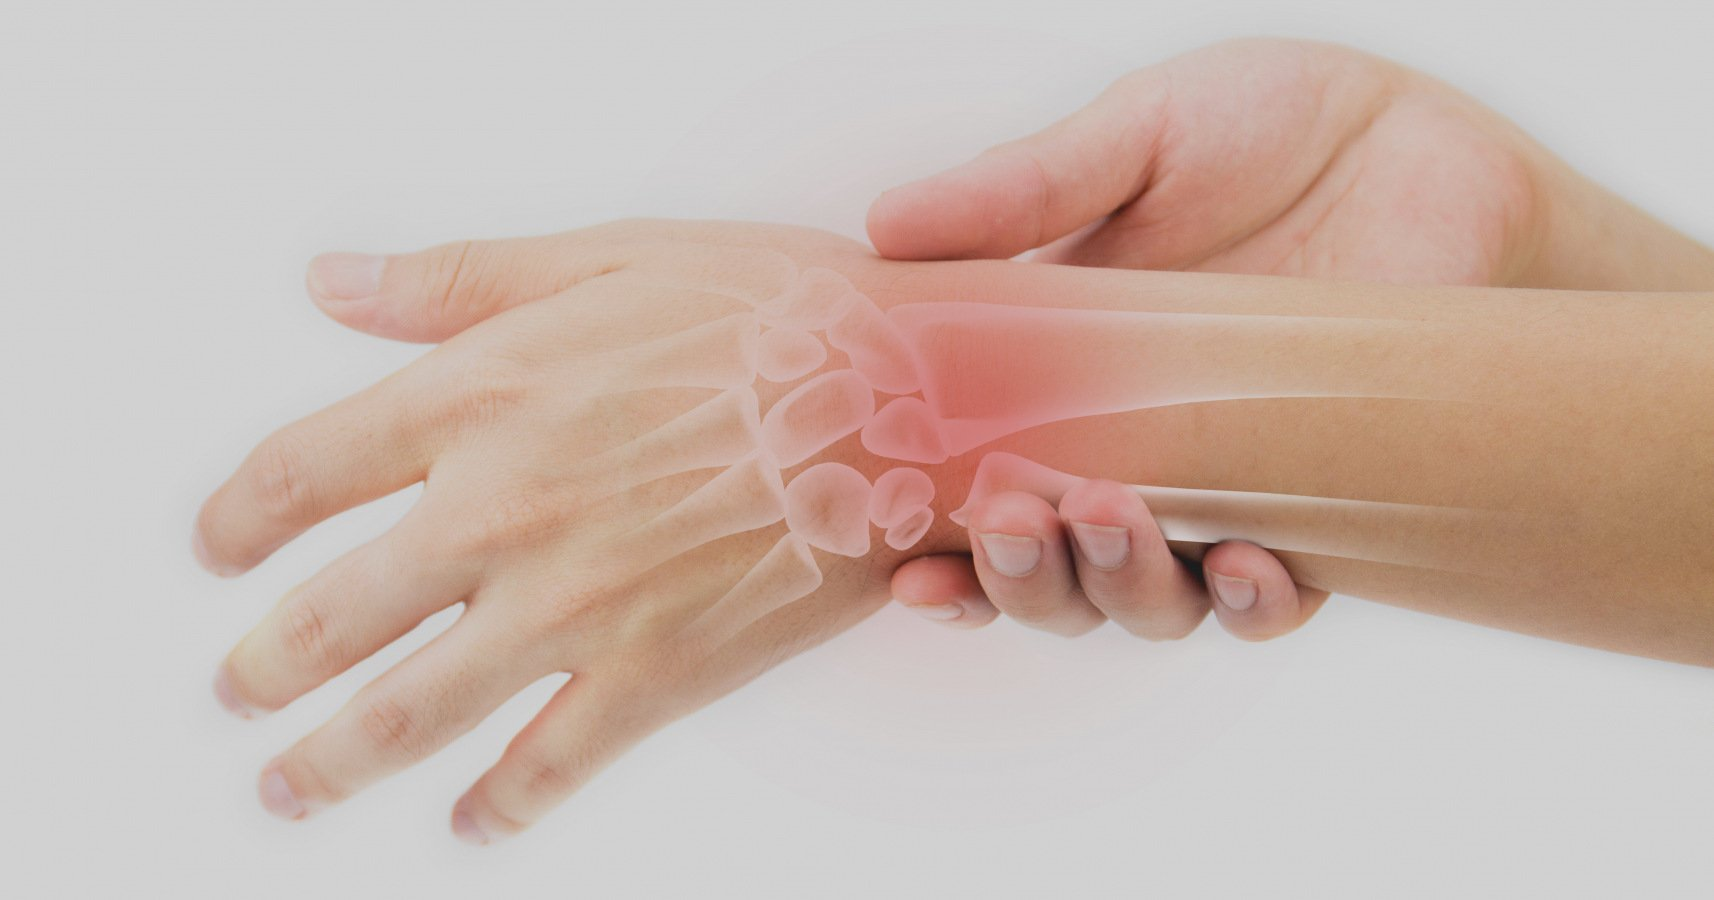 hand fracture playing sports